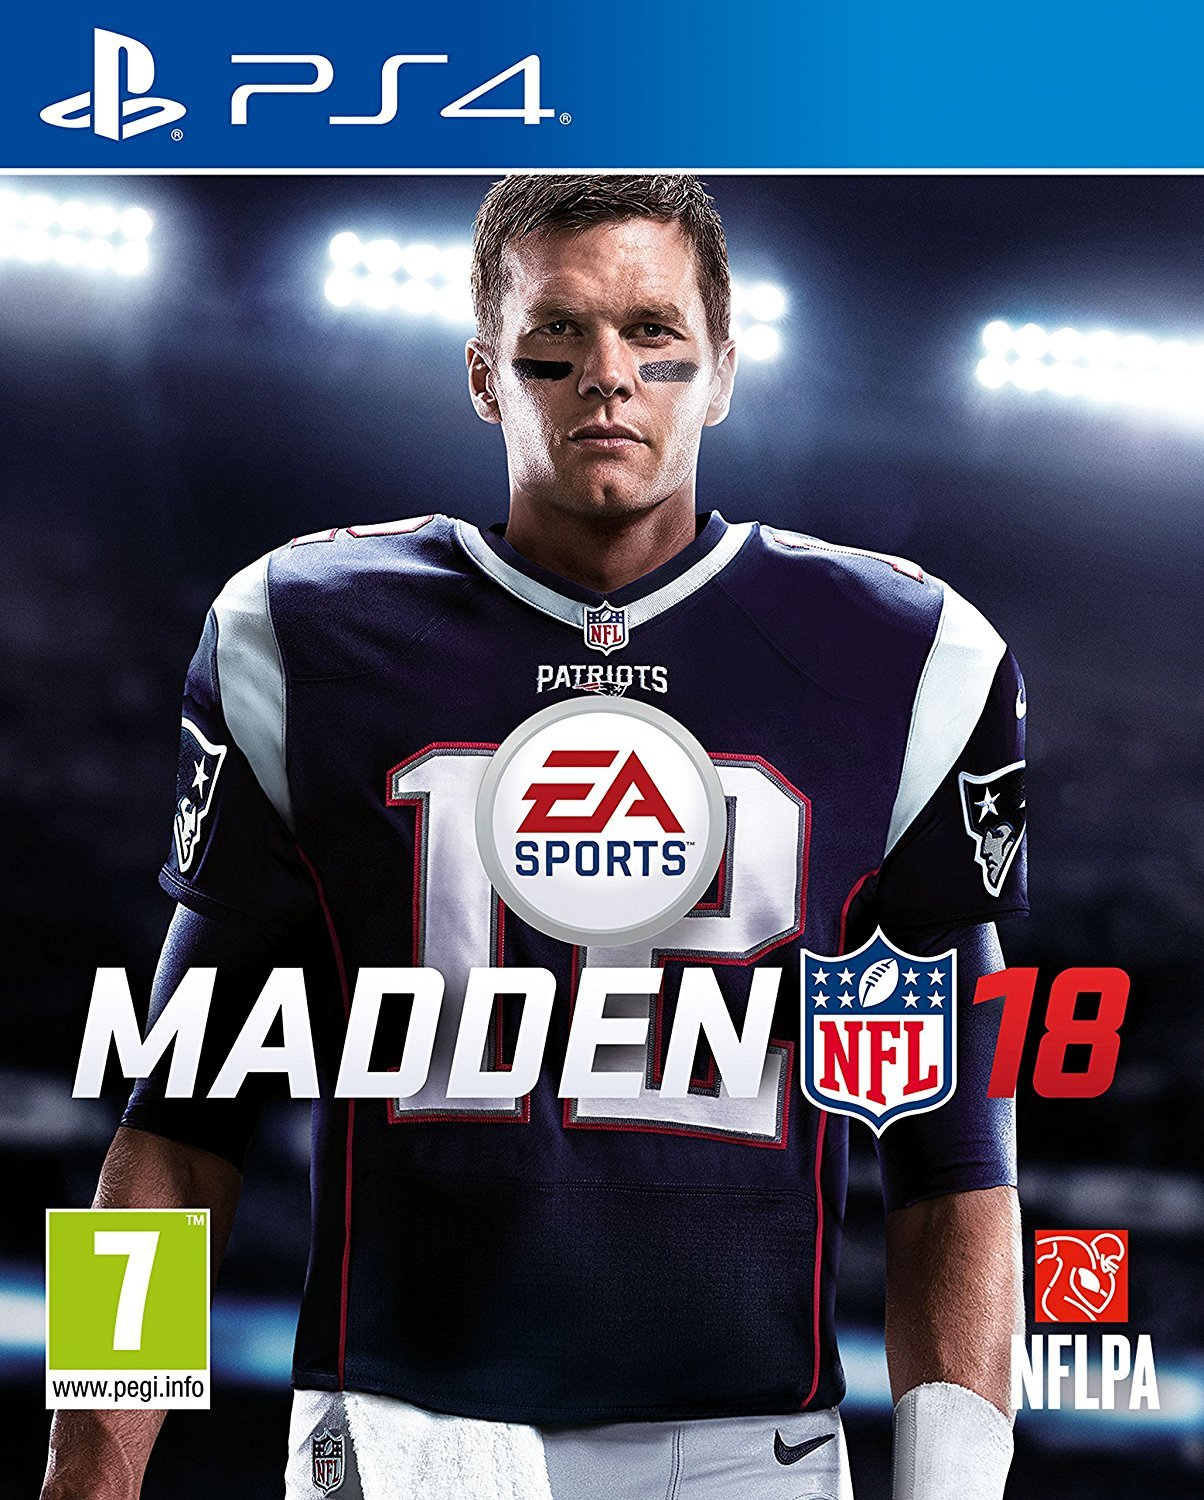 Madden NFL 18 for PS4 image